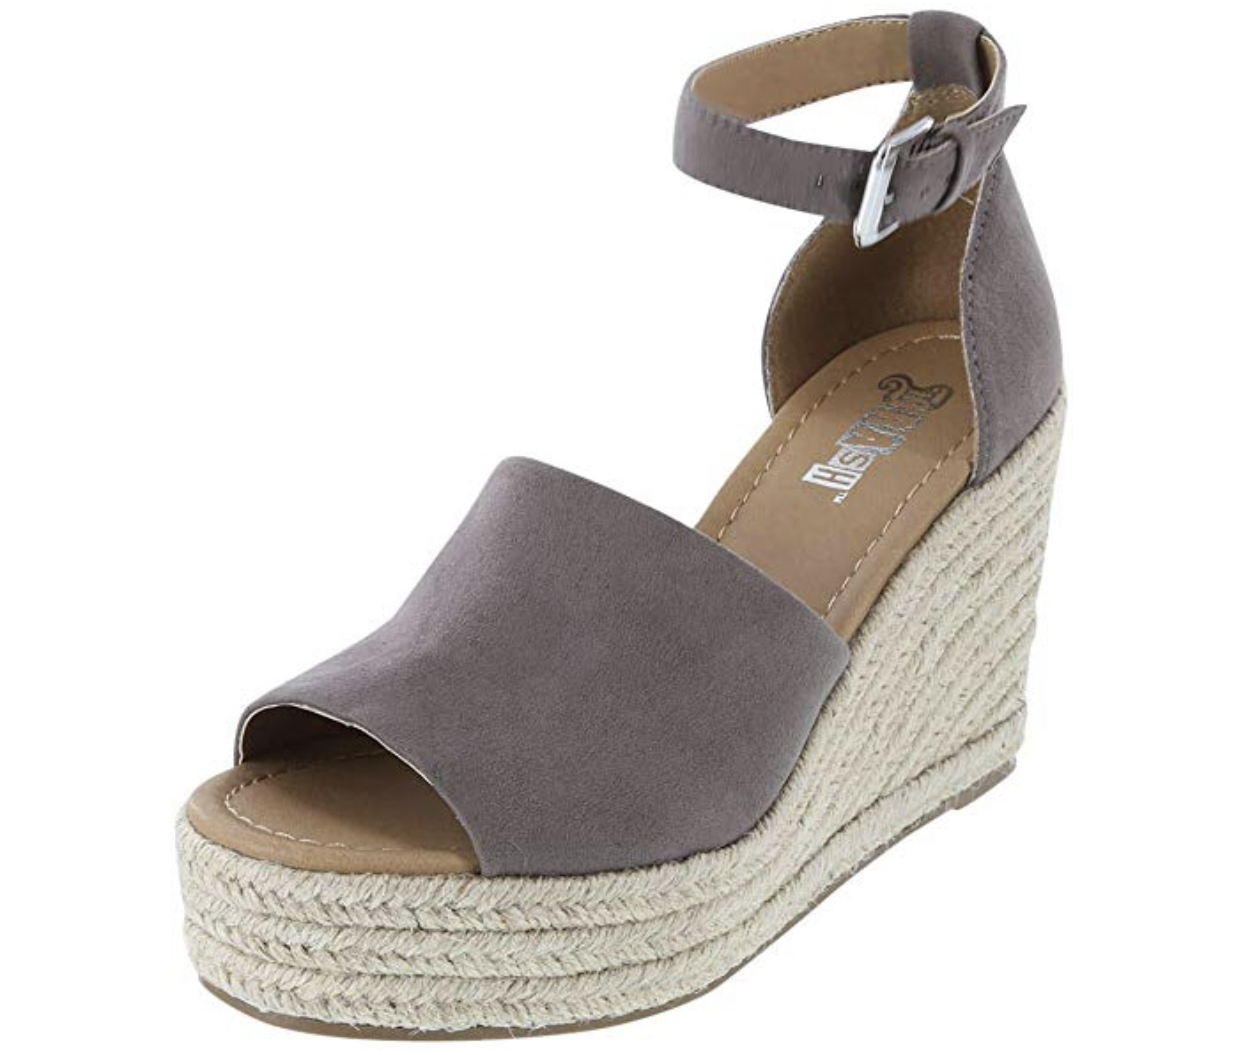 casual wardrobe basics, the best wedges, affordable sandals, amazon fashion, spring shoes